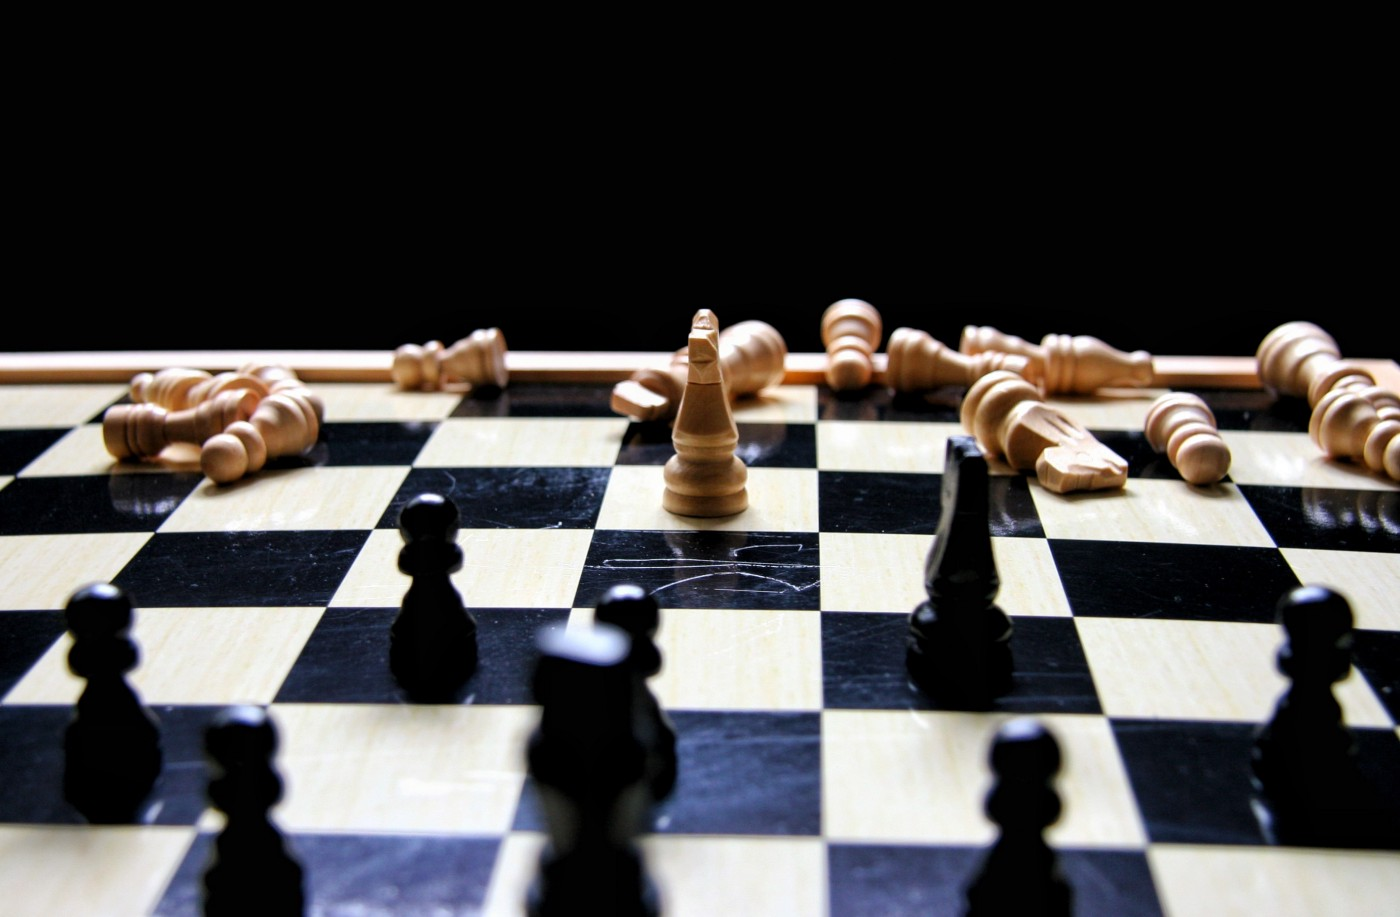 Chess board: the odds are stacked against you